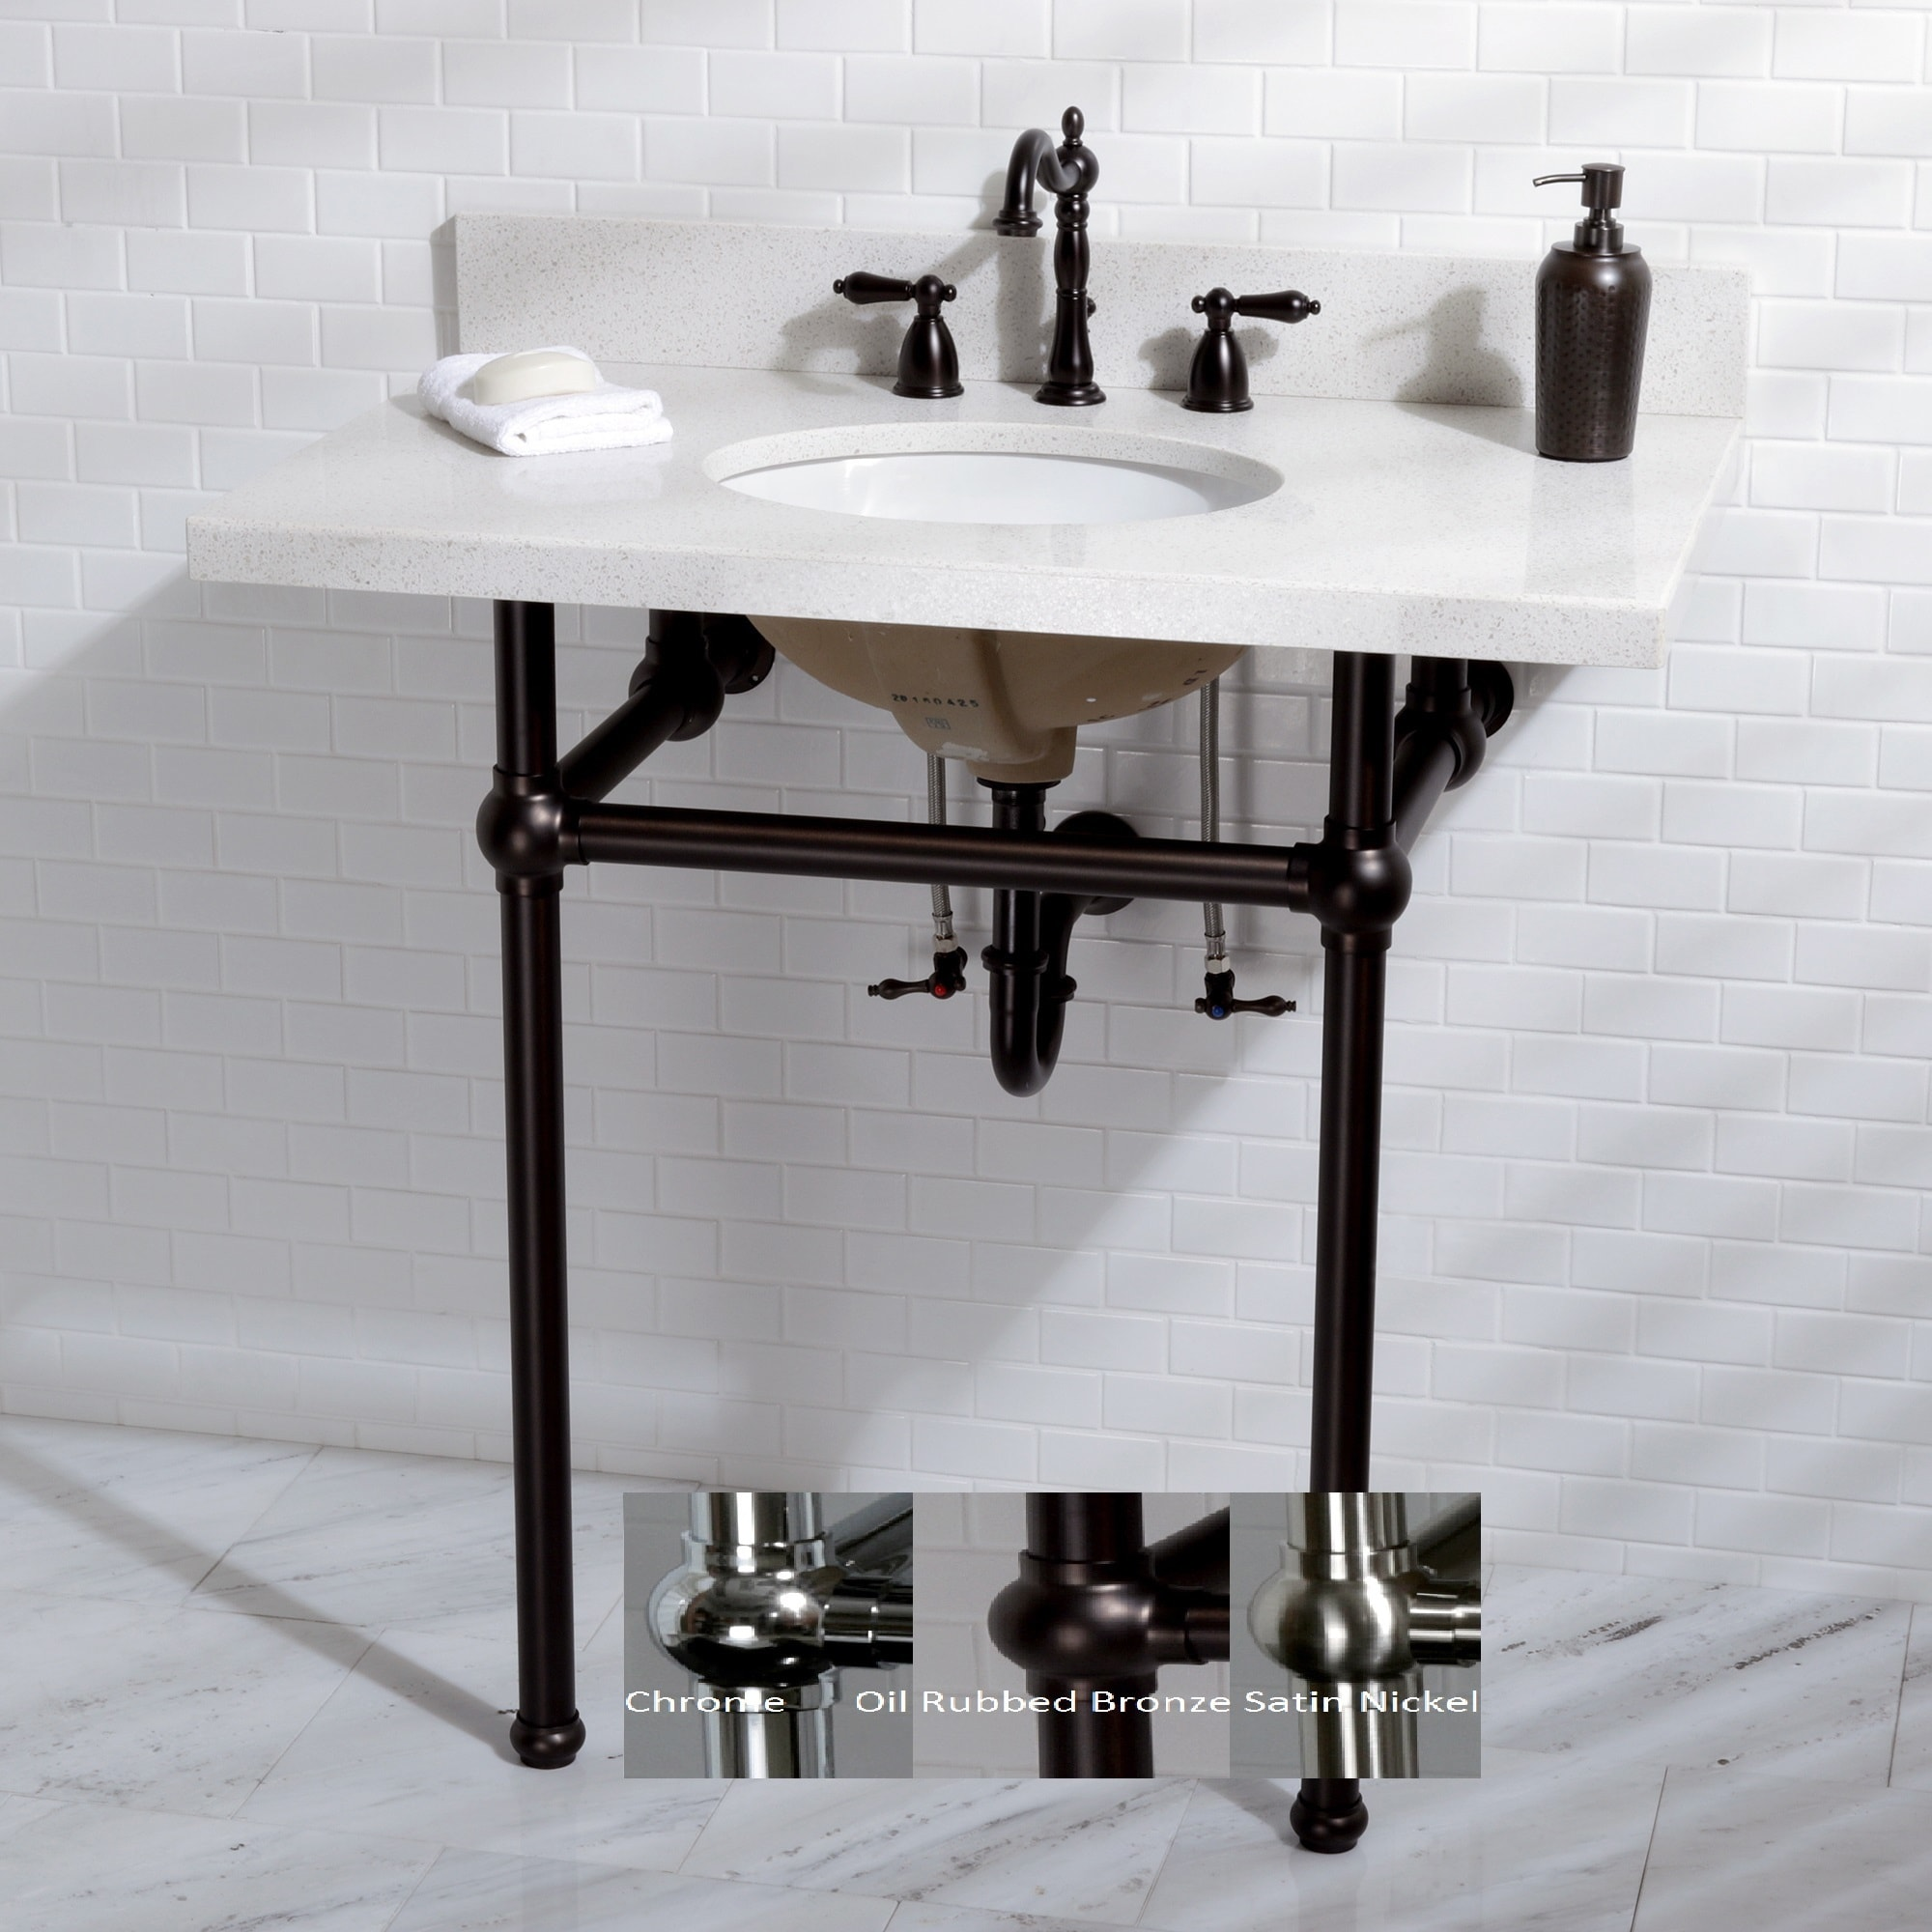 sinks of pedestal base bathrooms sizes elegant height sink cabinet design bathroom